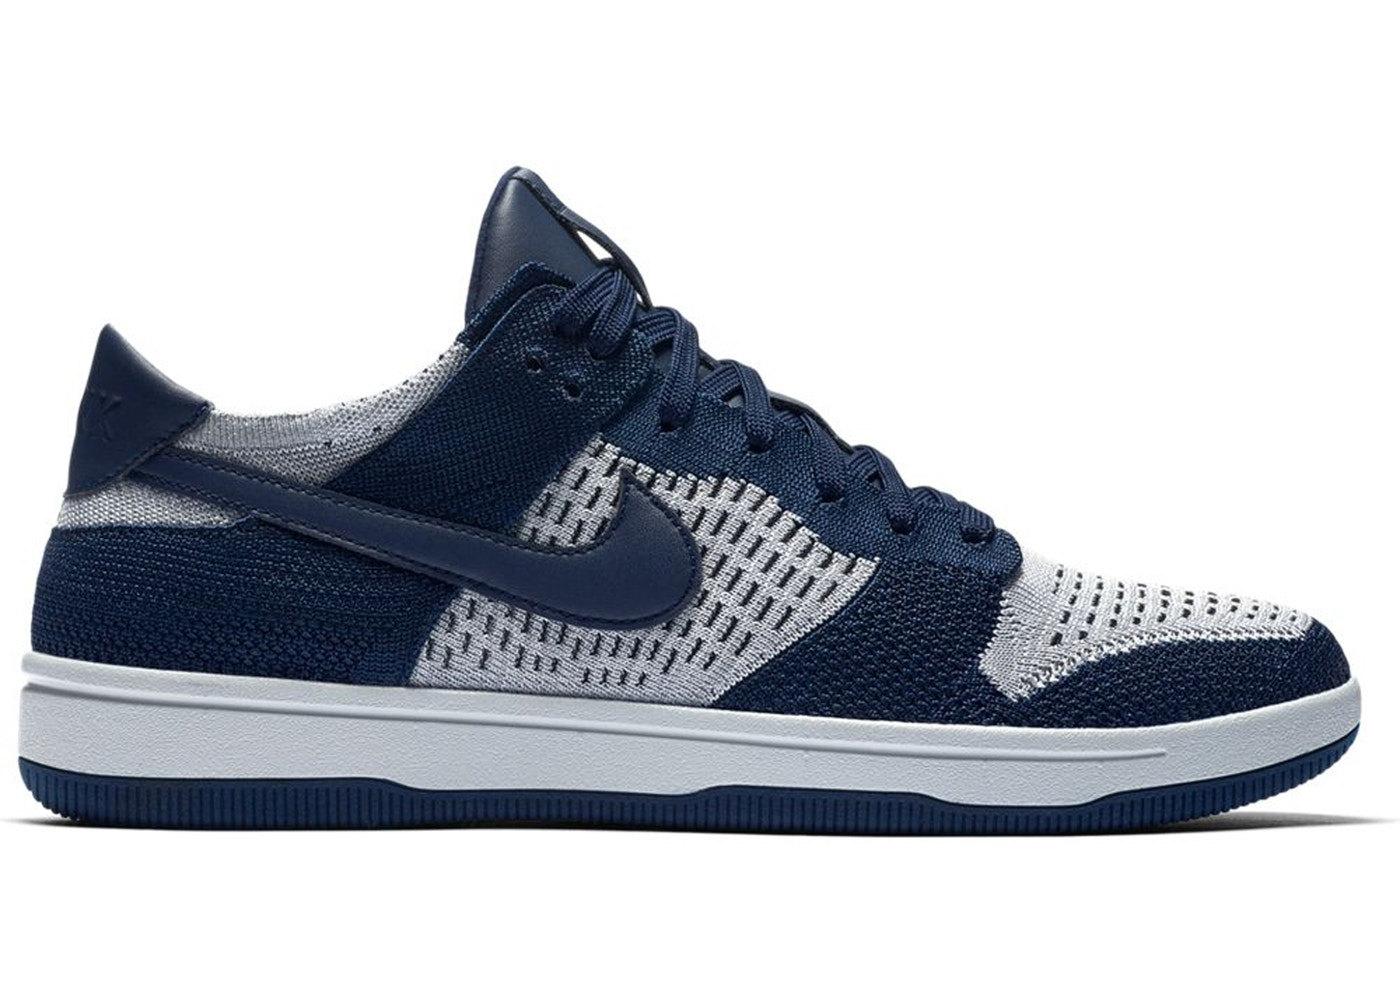 6810c5ef4e9b0 Nike Dunk Low Flyknit College Navy Pure Platinum - 917746-400